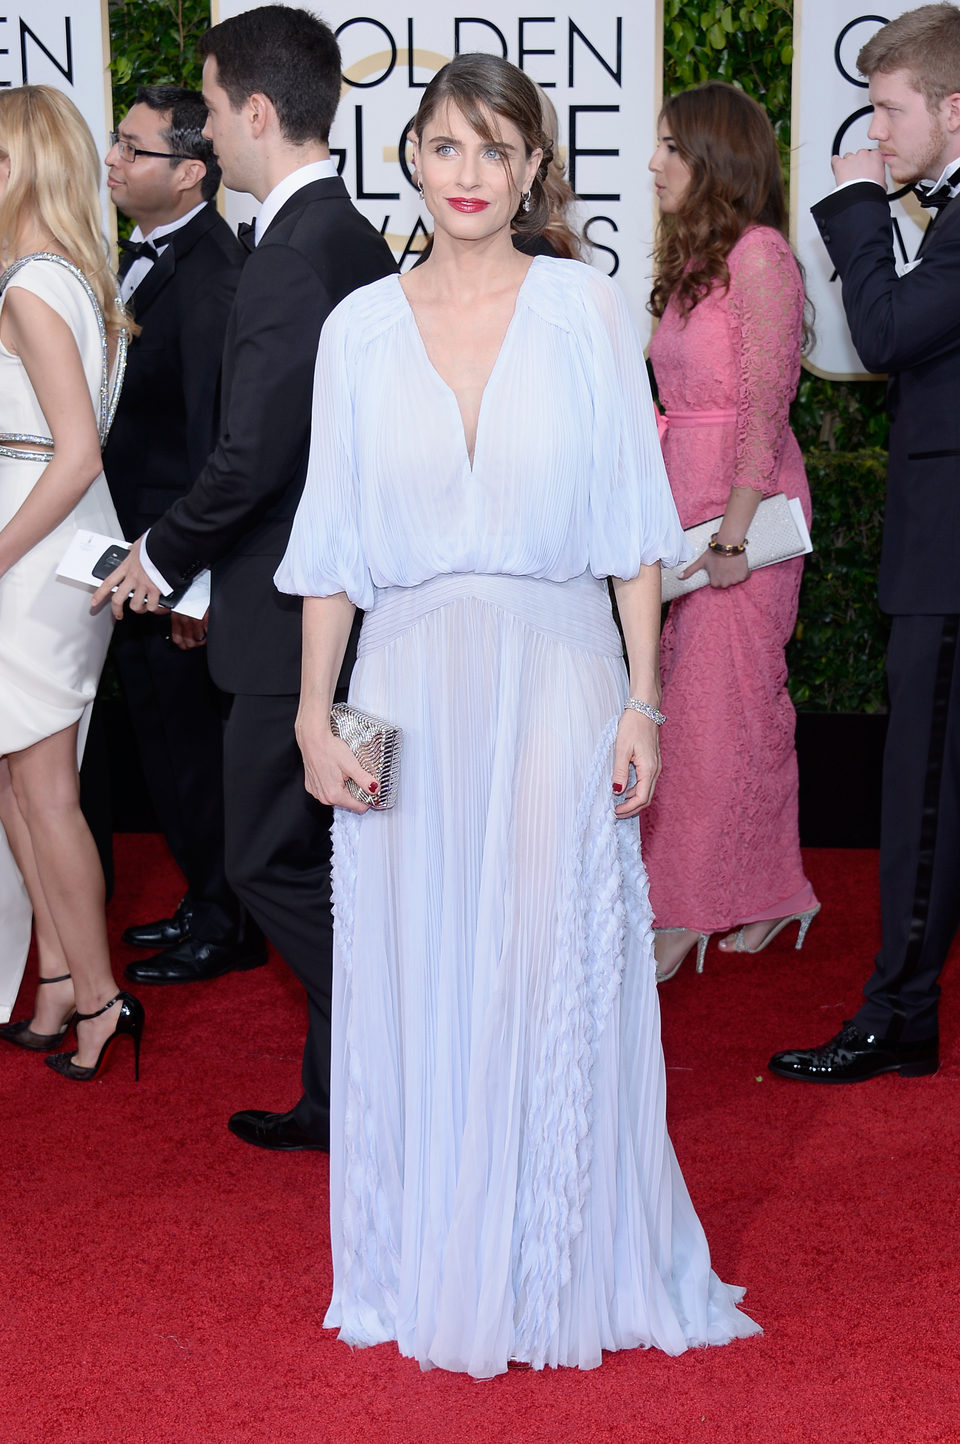 Amanda Peet at the Golden Globes 2015 red carpet